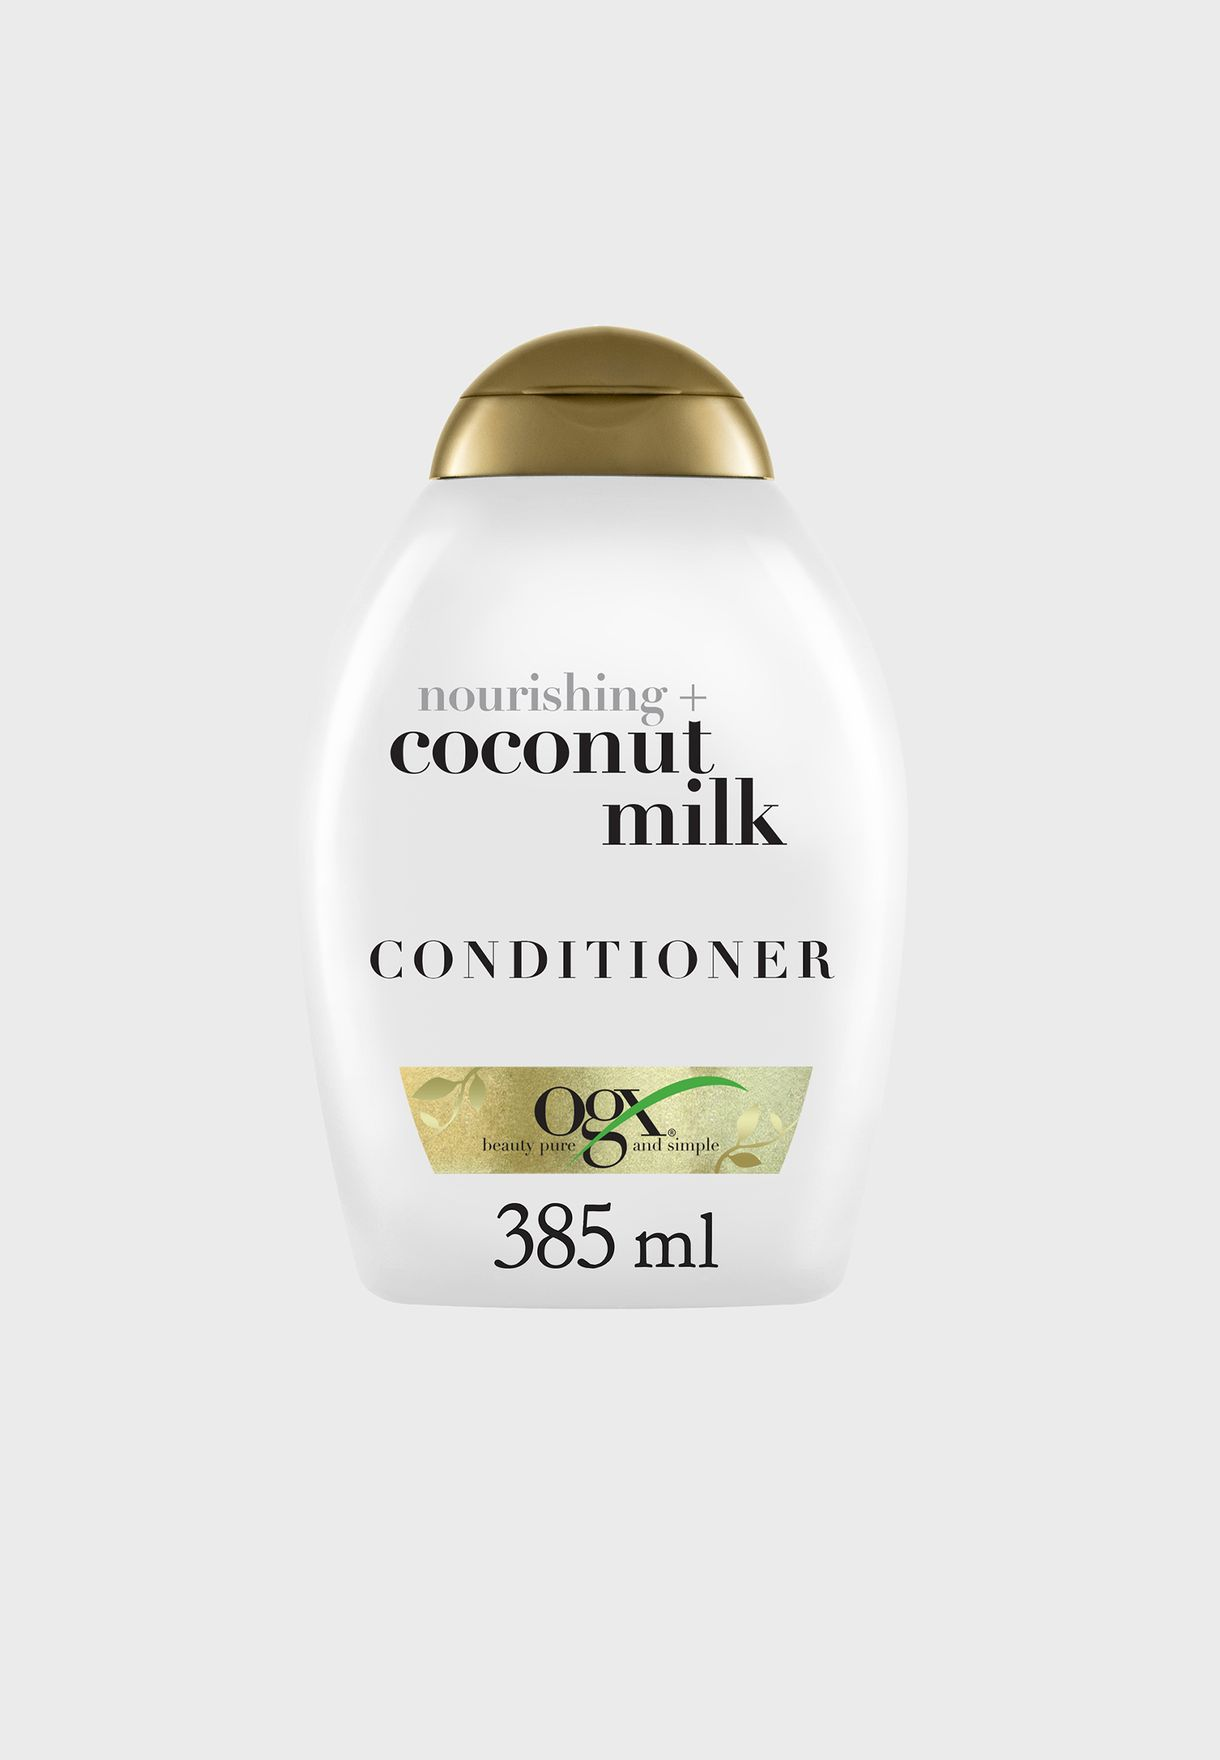 Nourishing+ Coconut Milk Conditioner 385ml